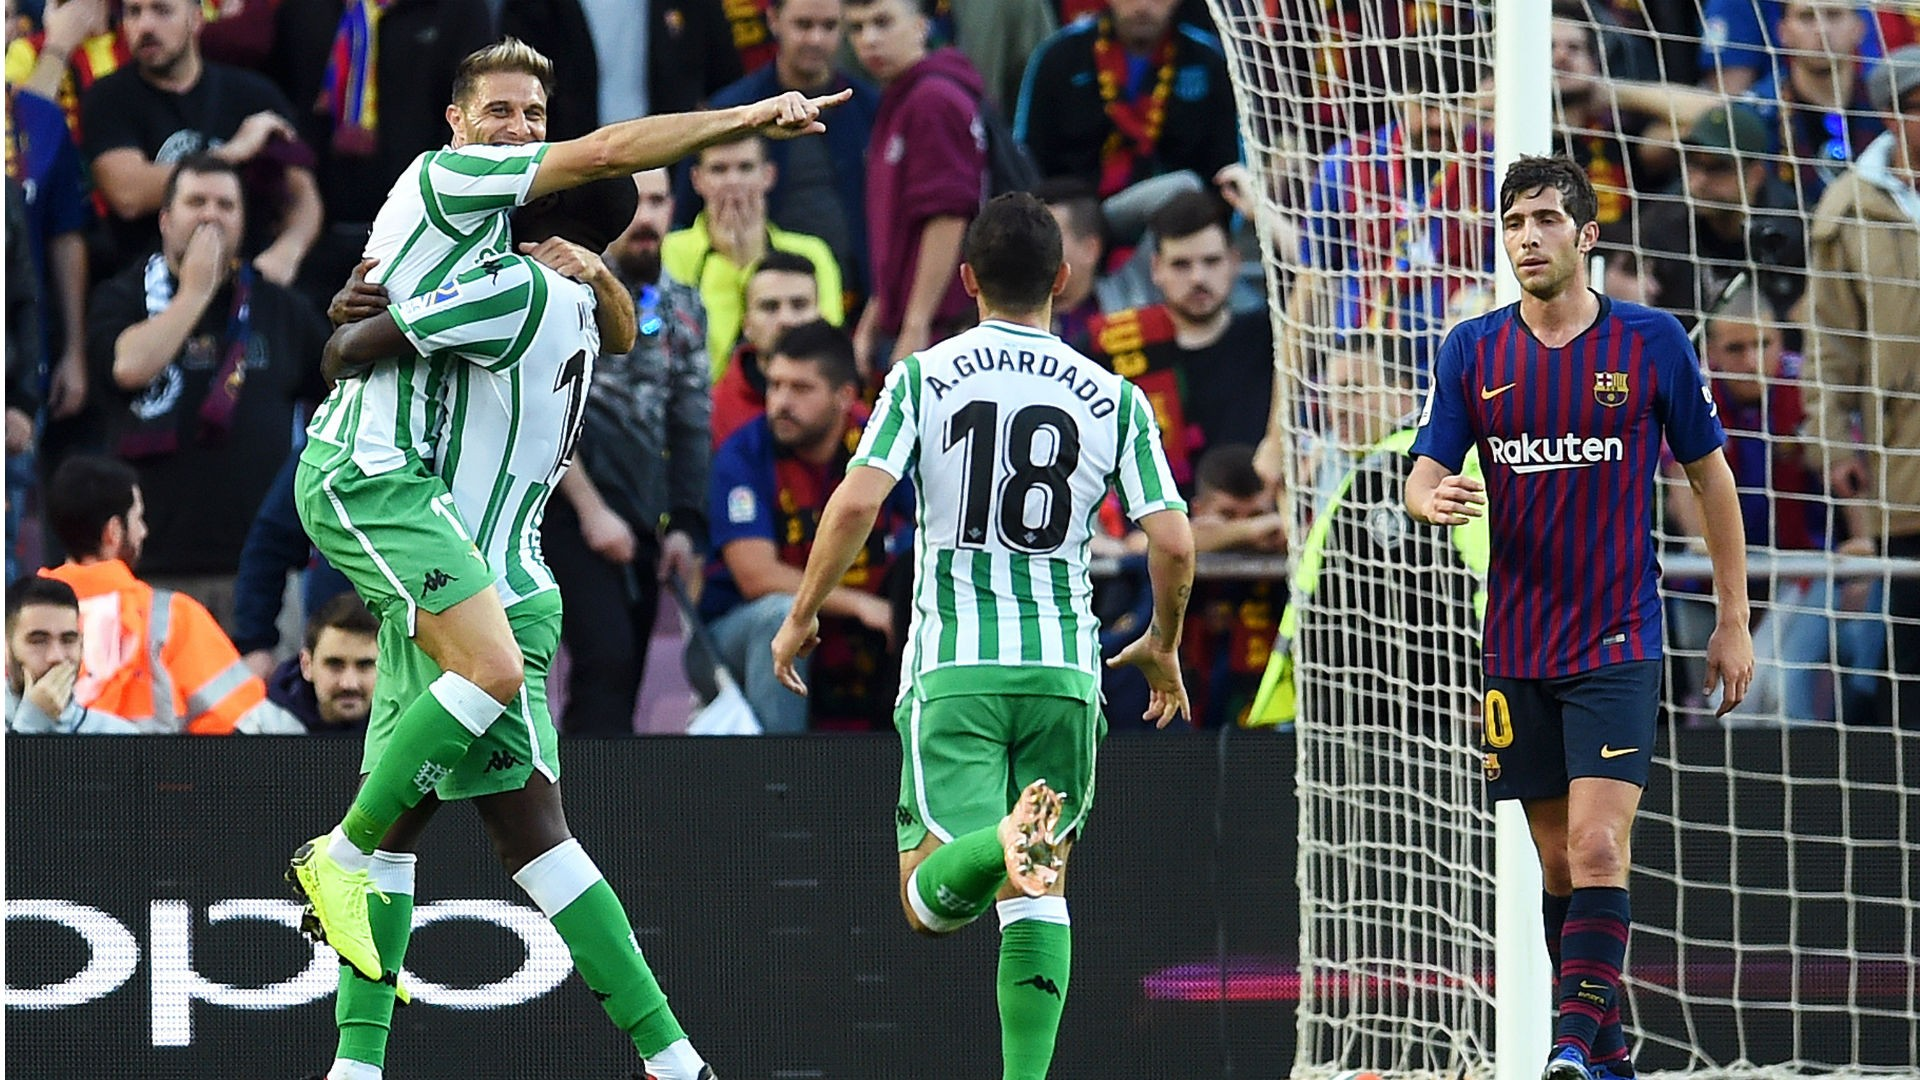 joaquin cropped o4e33gtqanta18fd0742uo2iy - Barcelona 3-4 Real Betis [LaLiga Highlights] [Watch]